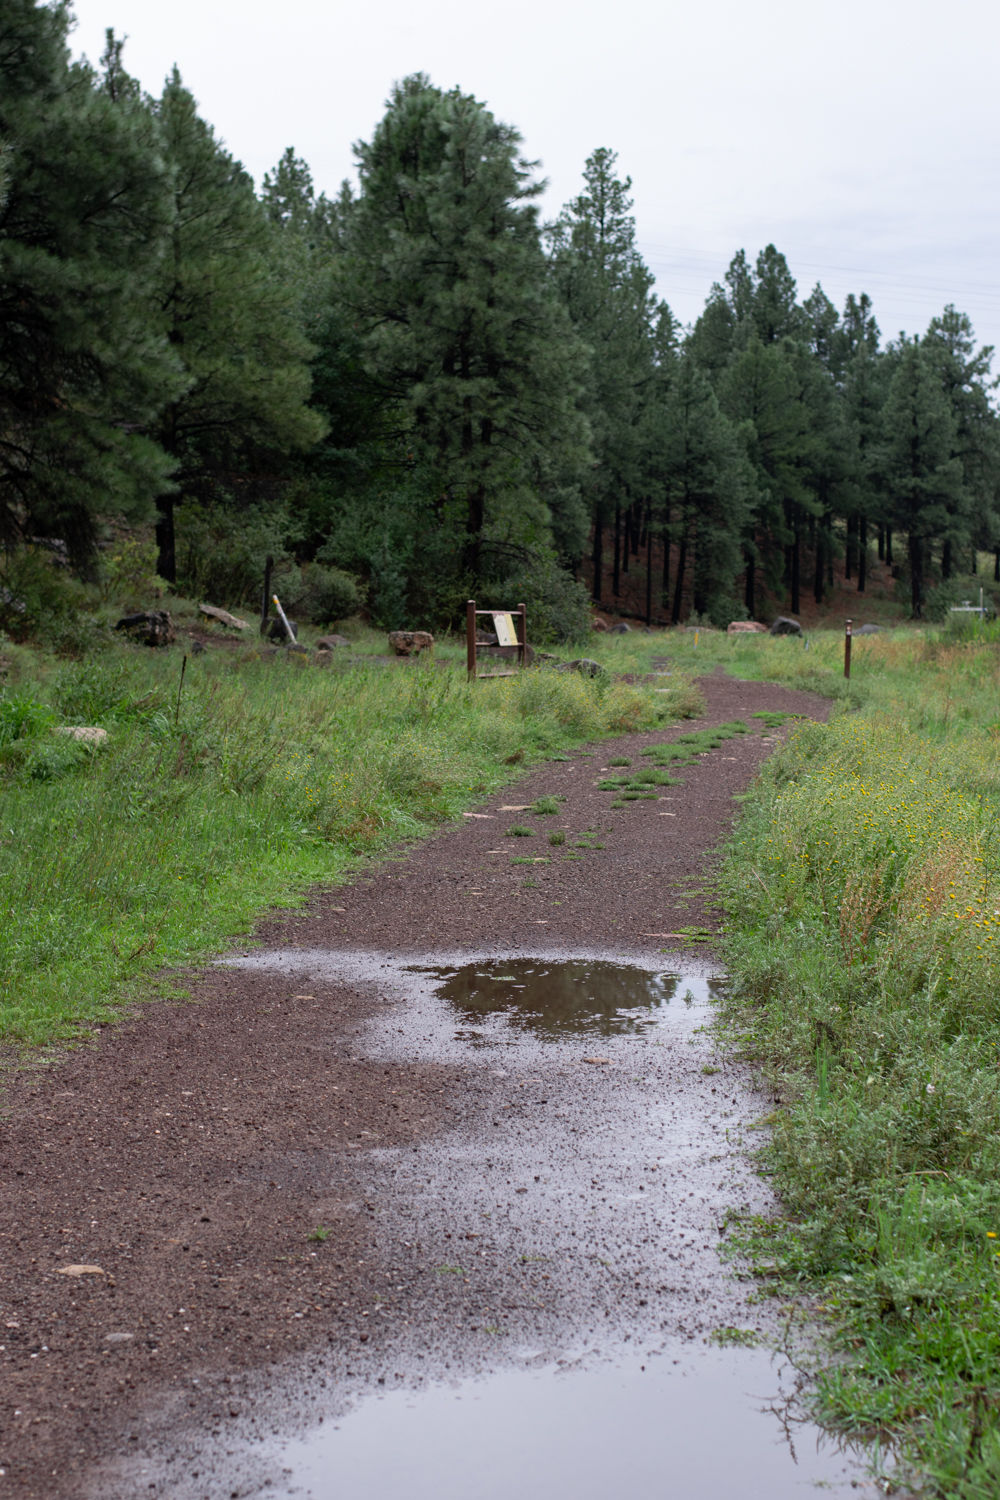 Rain continues to fall in Flagstaff